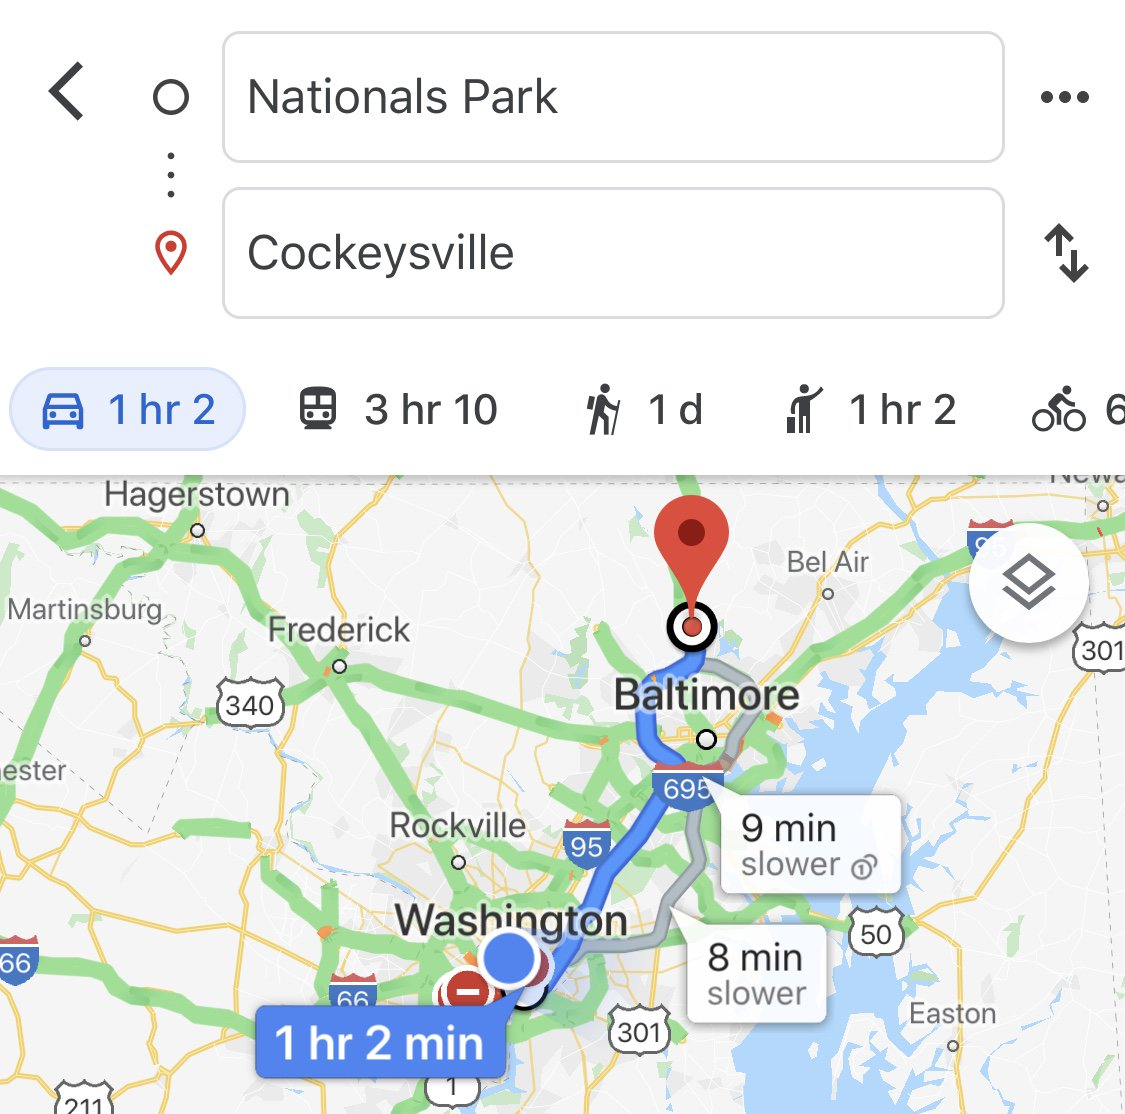 A reminder: Just because we're up, and Cockeysville is just an hour away from @Nationals Park, we definitely should NOT go there... #STAYINTHEFIGHT pic.twitter.com/kGk6qlahBO